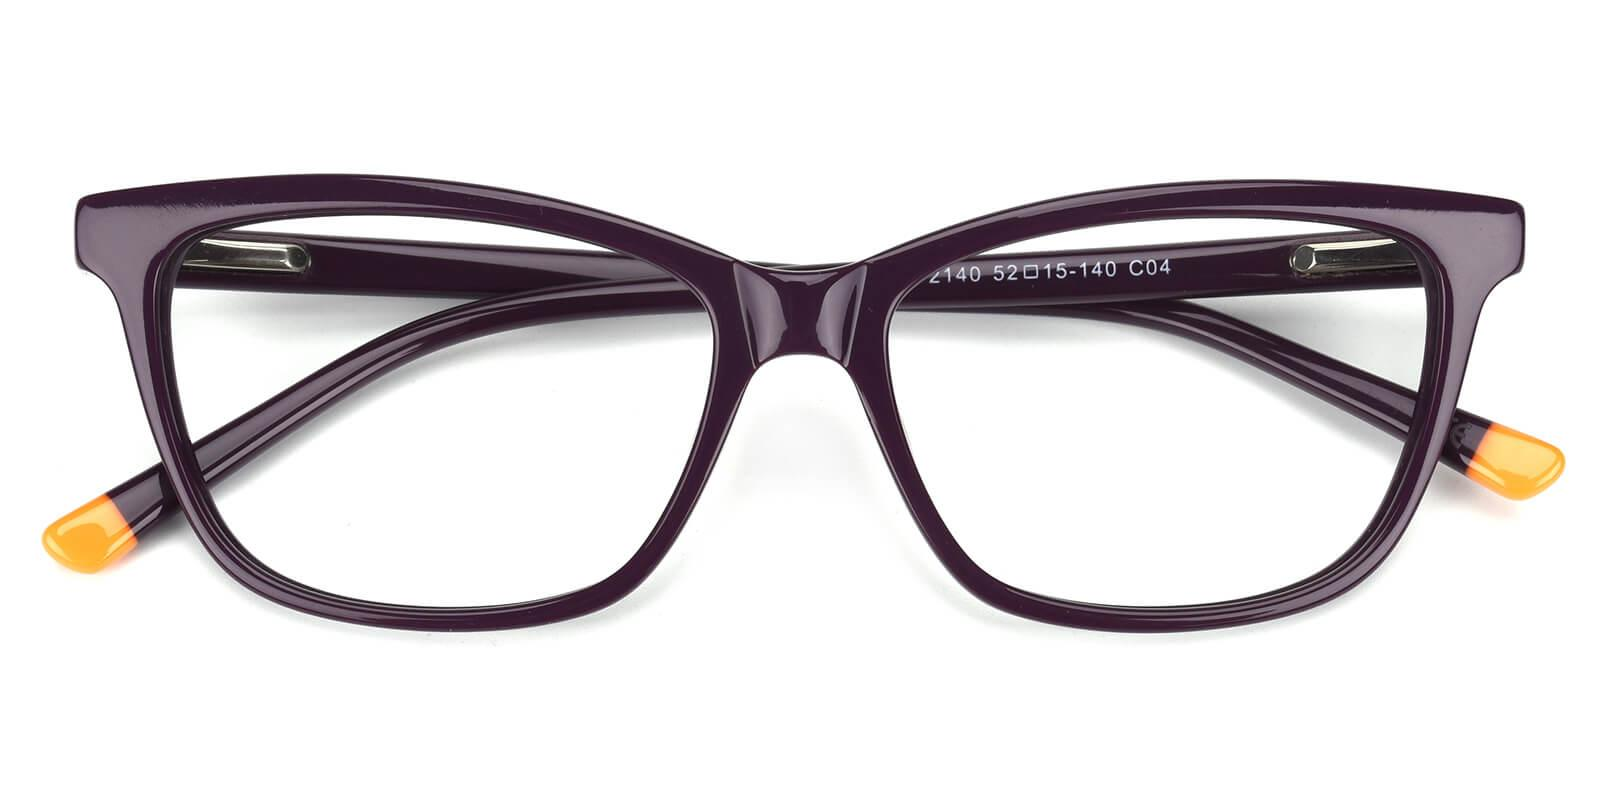 Clowdia-Purple-Square / Cat-Acetate-Eyeglasses-detail